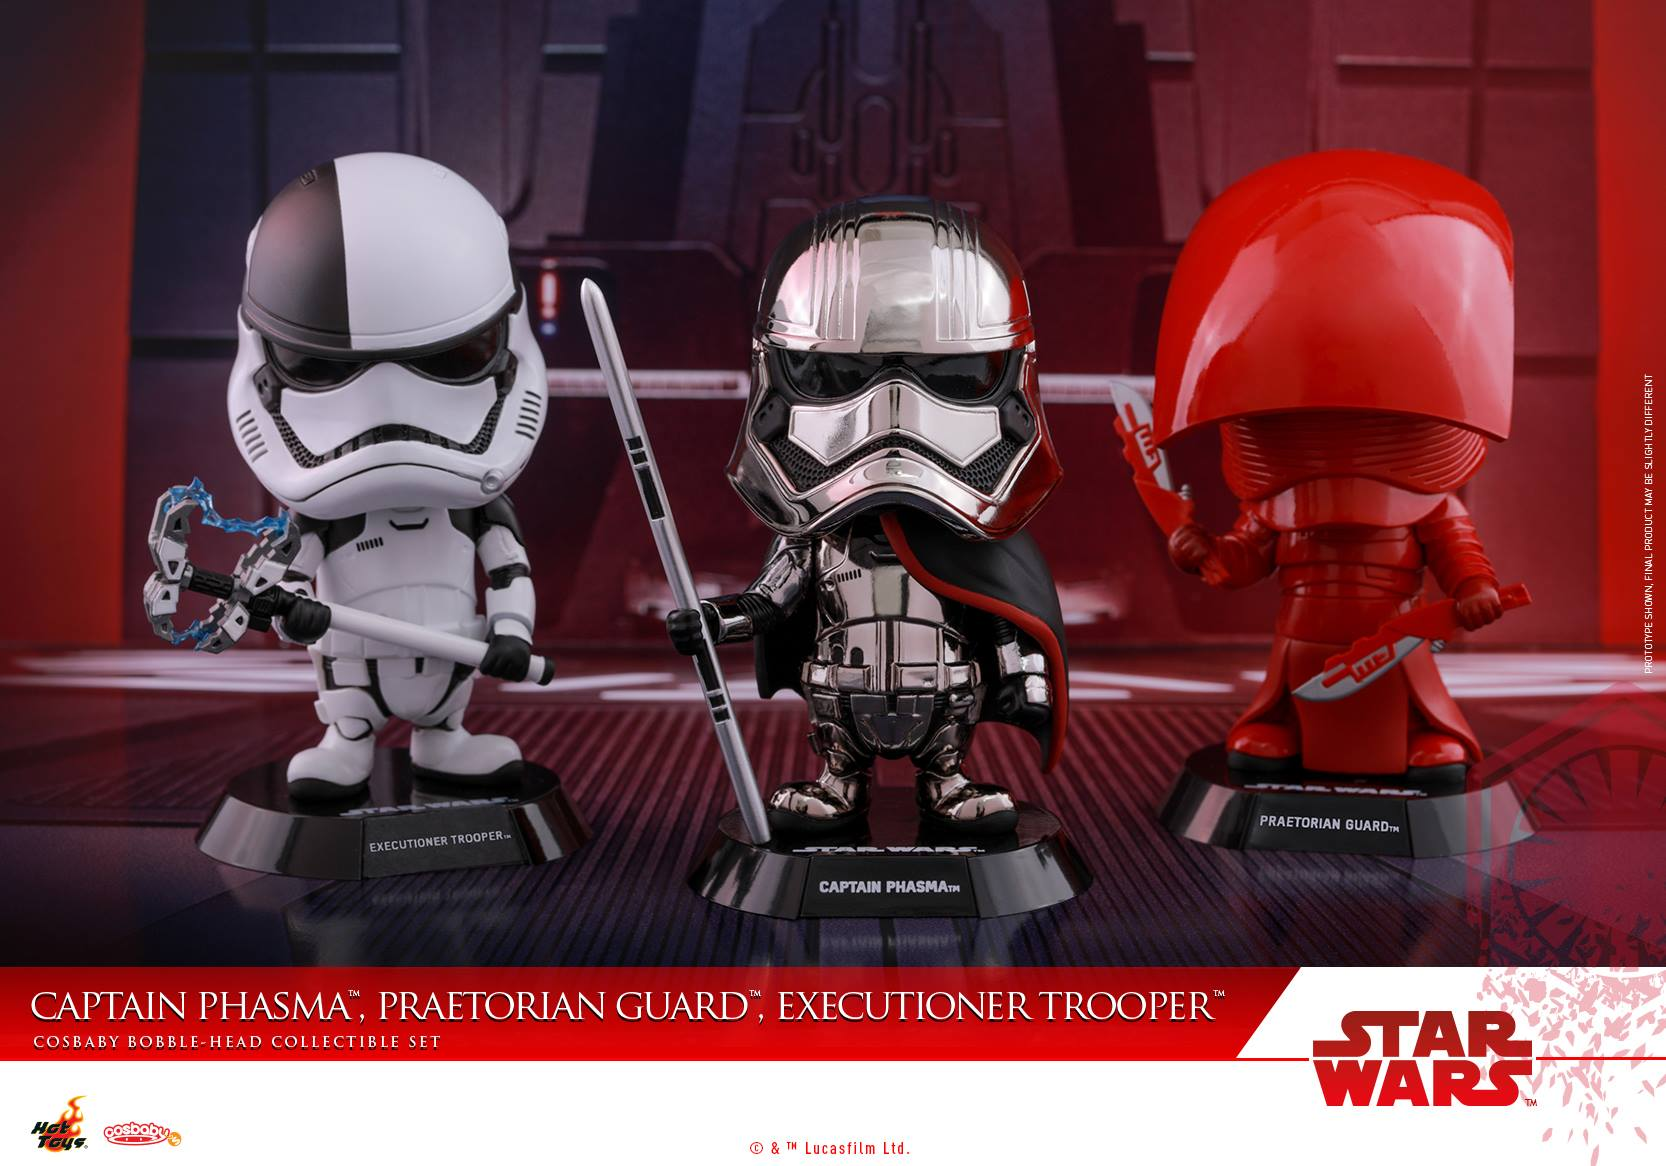 Hot Toys COSB415 Captain Phasma, Praetorian Guard & Executioner Trooper Set